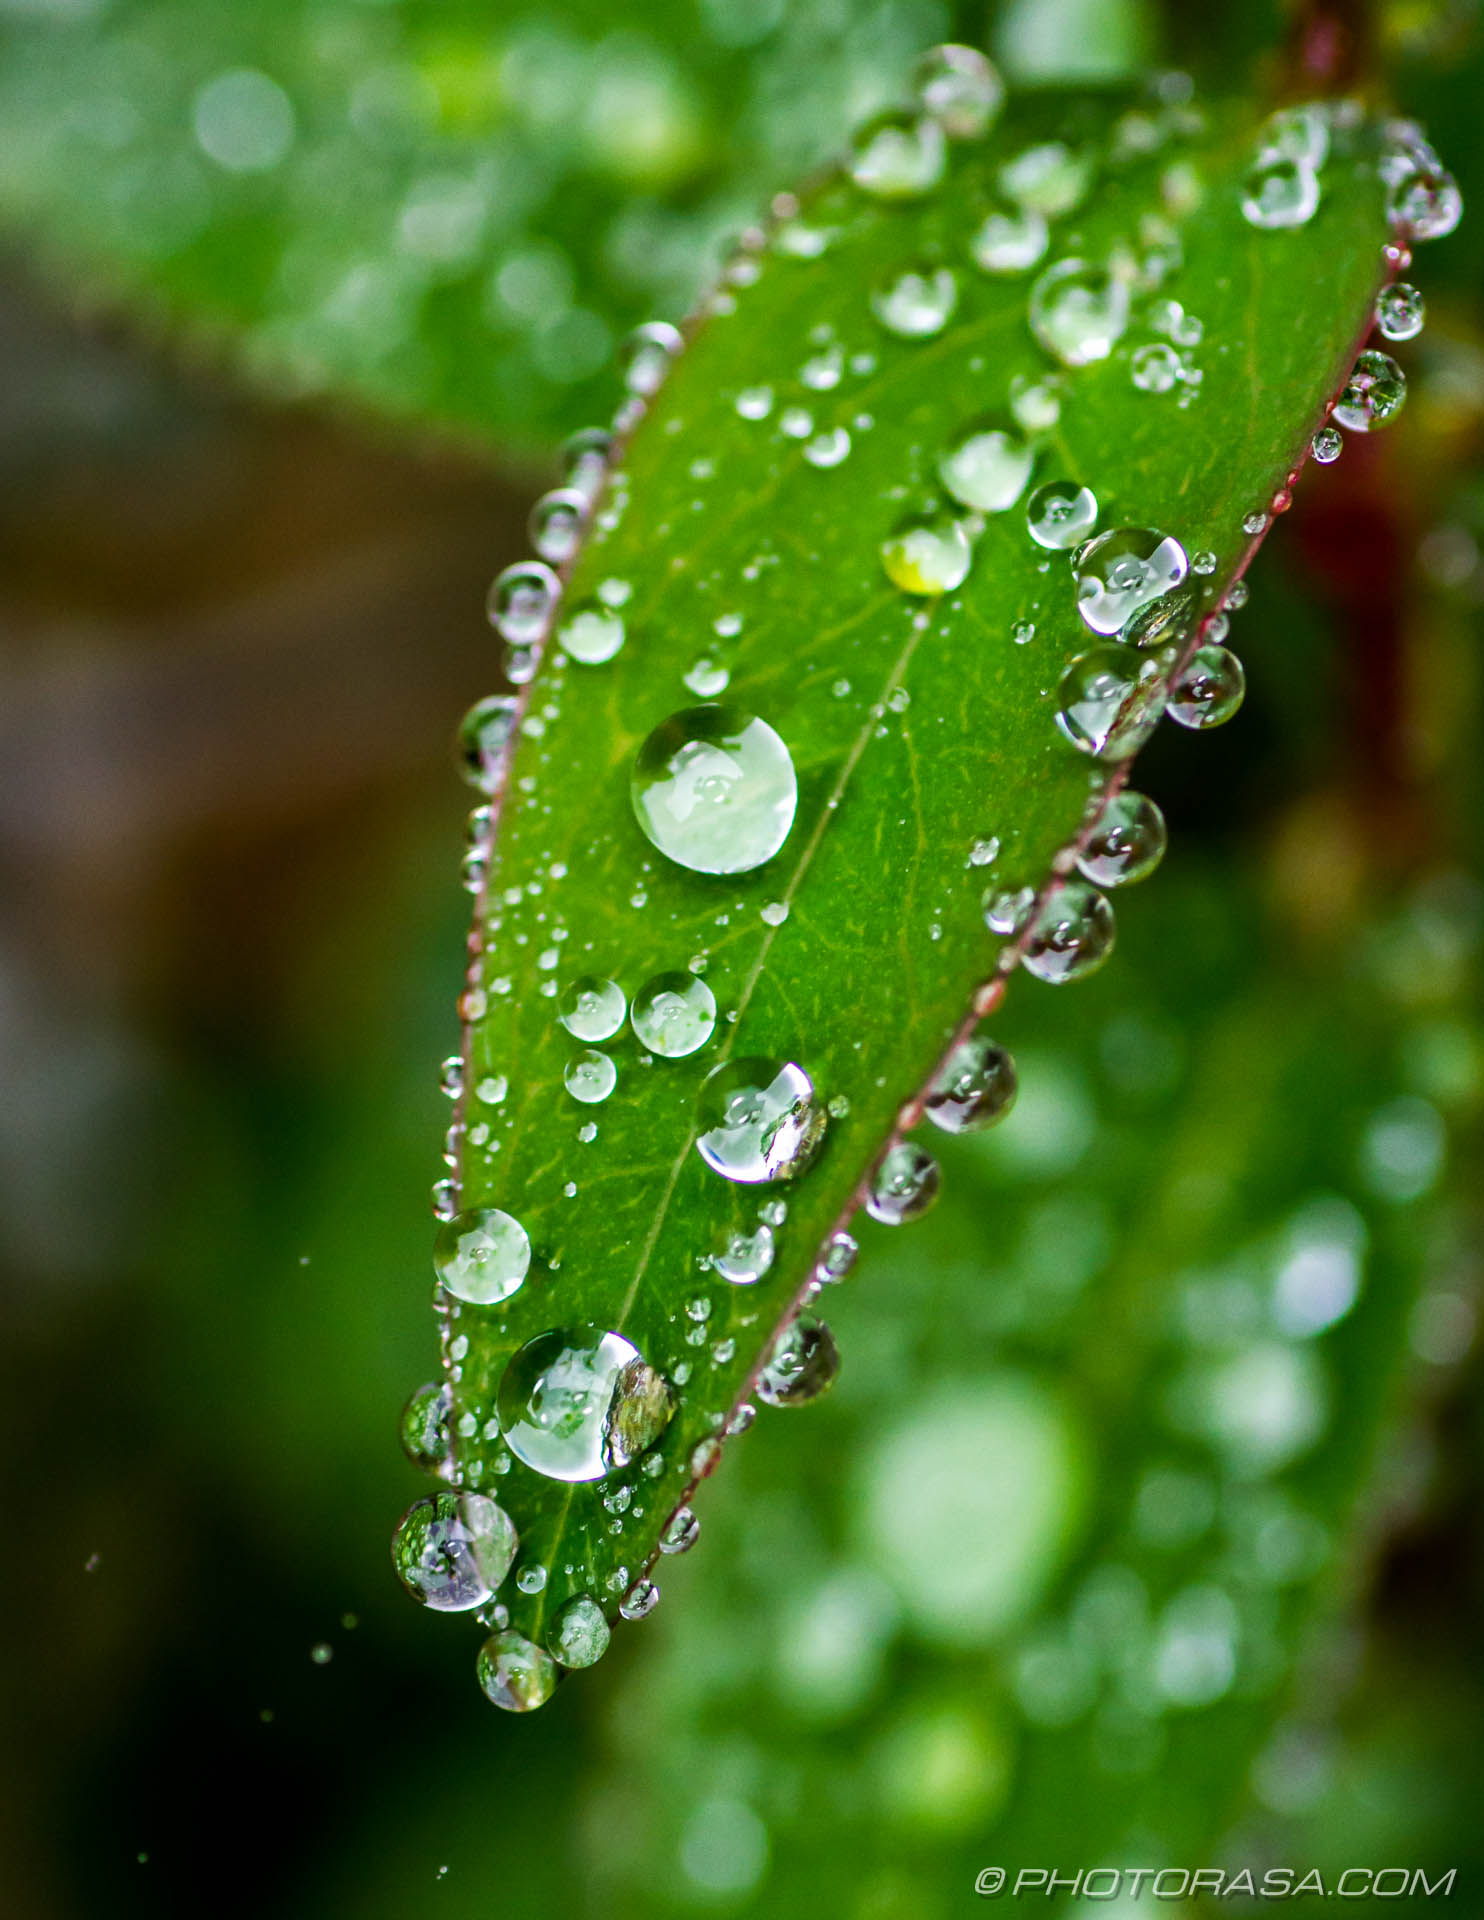 https://photorasa.com/dewdrops-tiny-leaves/tiny-water-droplets-on-small-leaf/